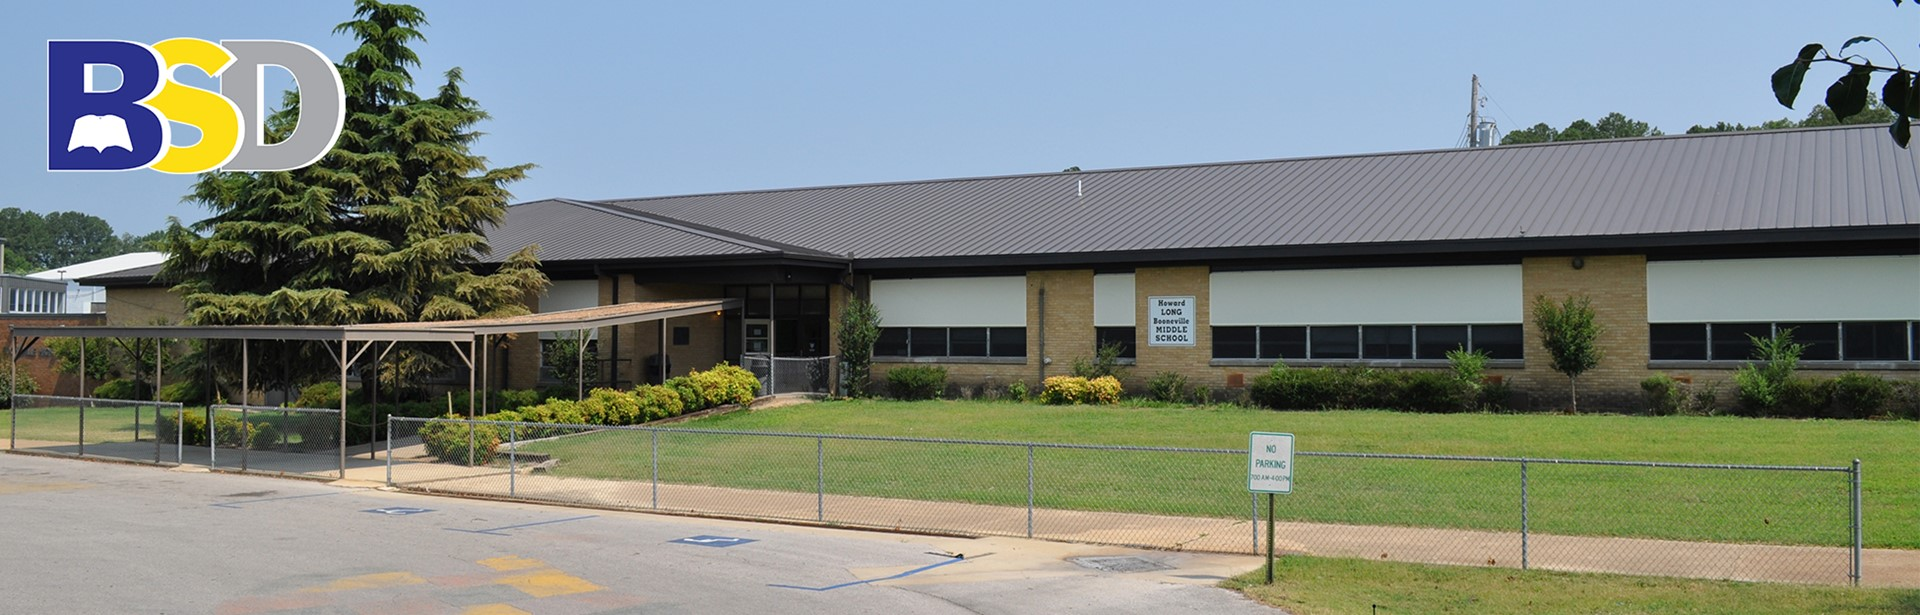 Booneville Middle School